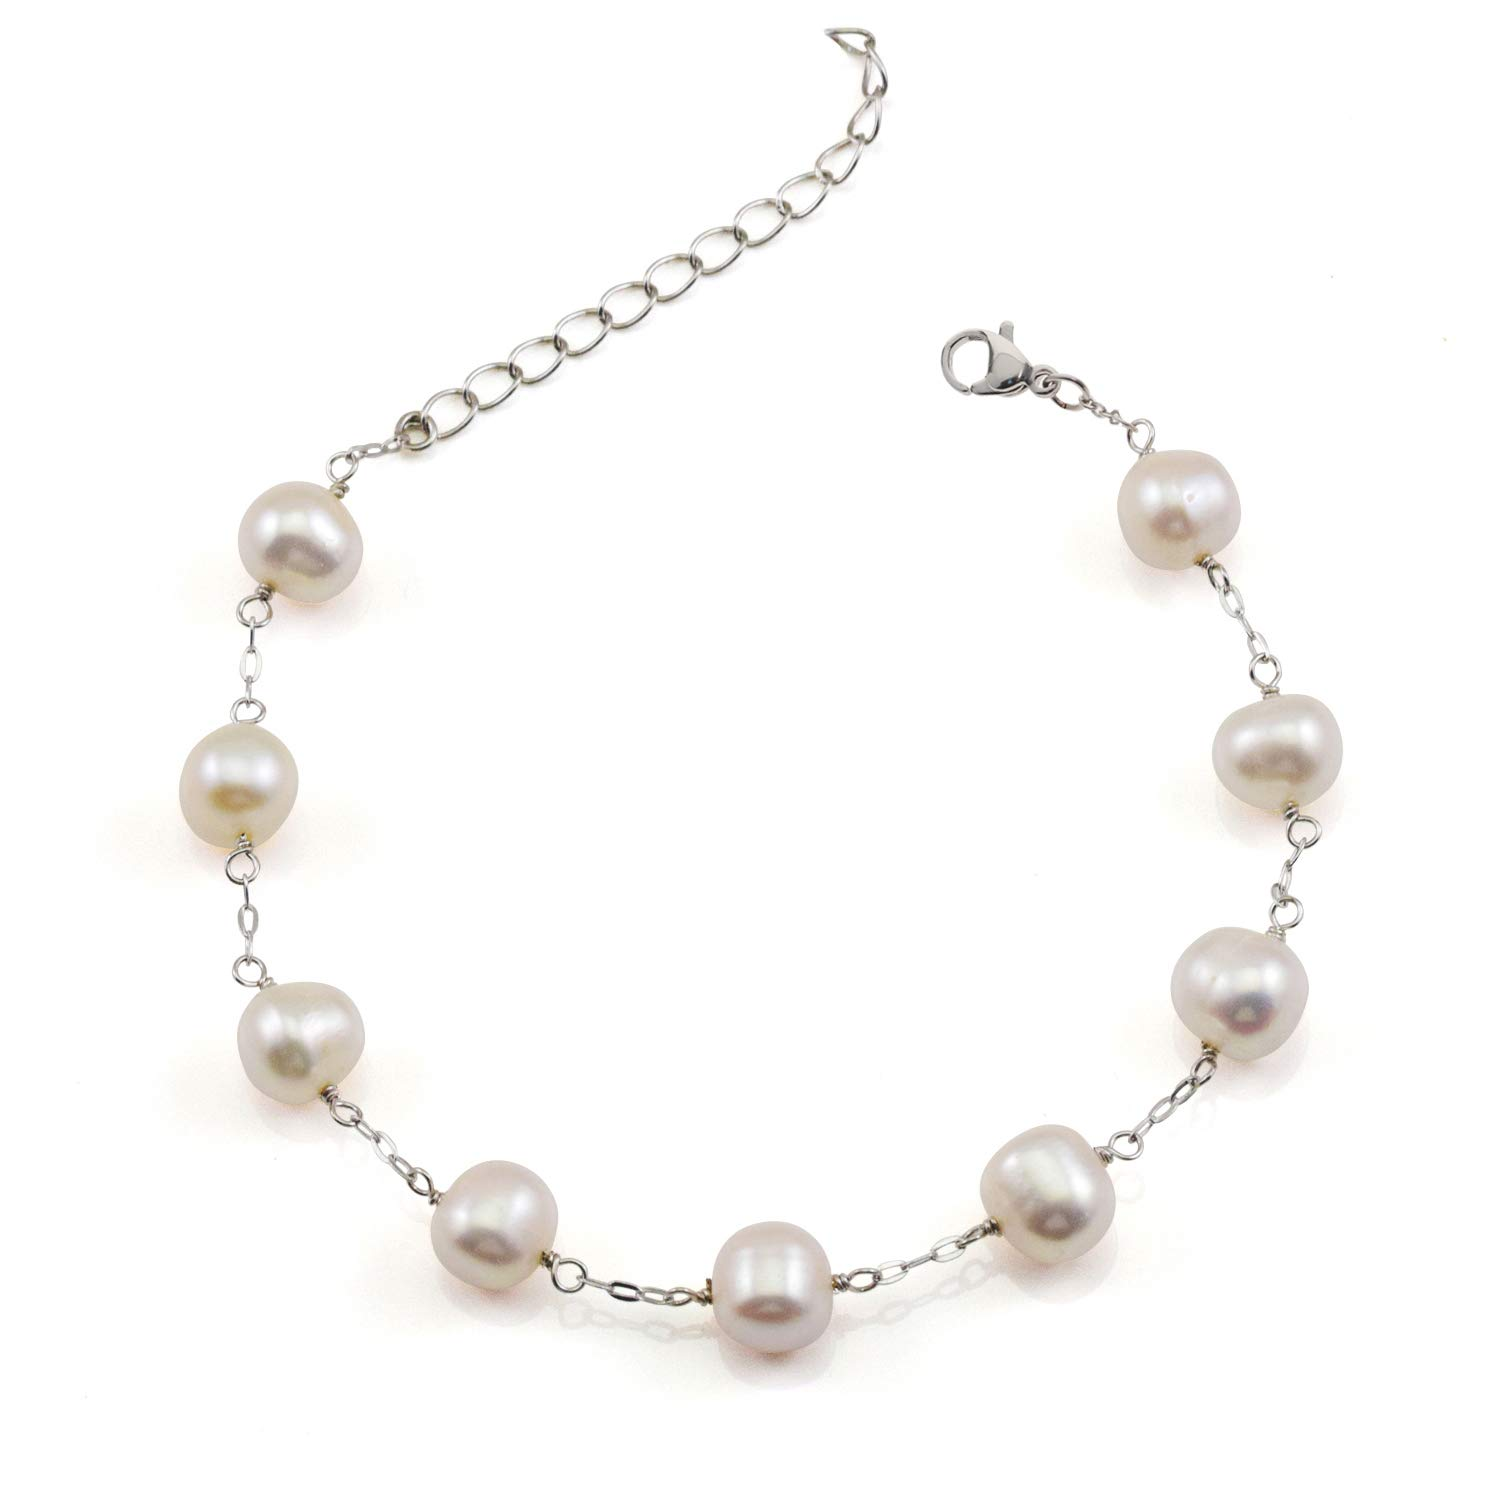 Women Bracelet Freshwater Cultured Pearl with 925 Sterling Silver Chain 7.5 JFUME MEPB-002WH